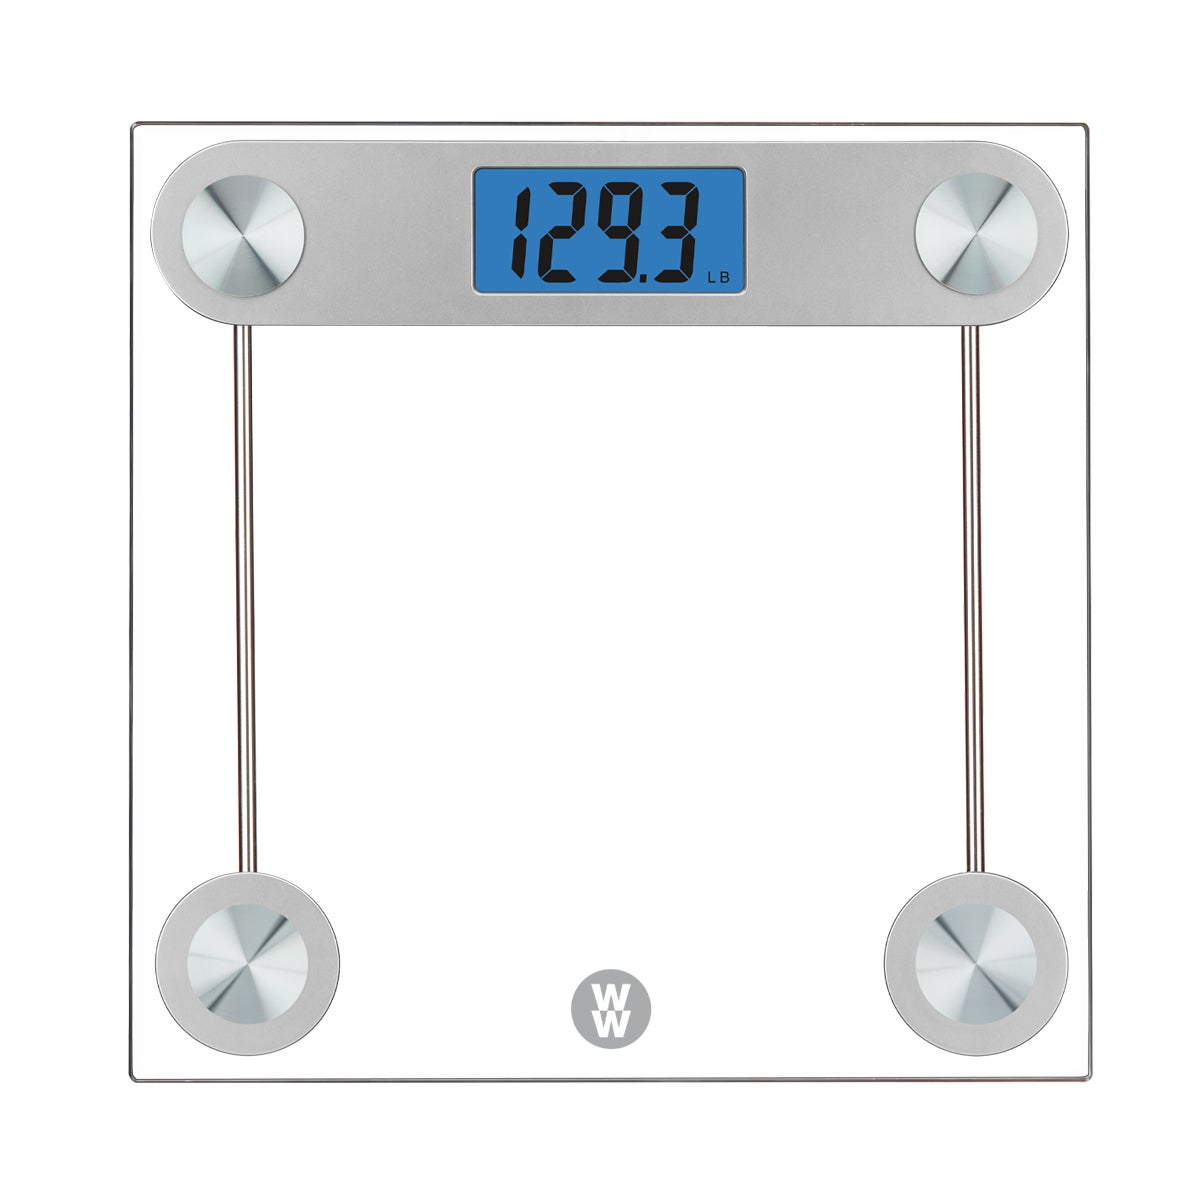 WW Scales By Conair Digital Glass with Blue Backlight Display